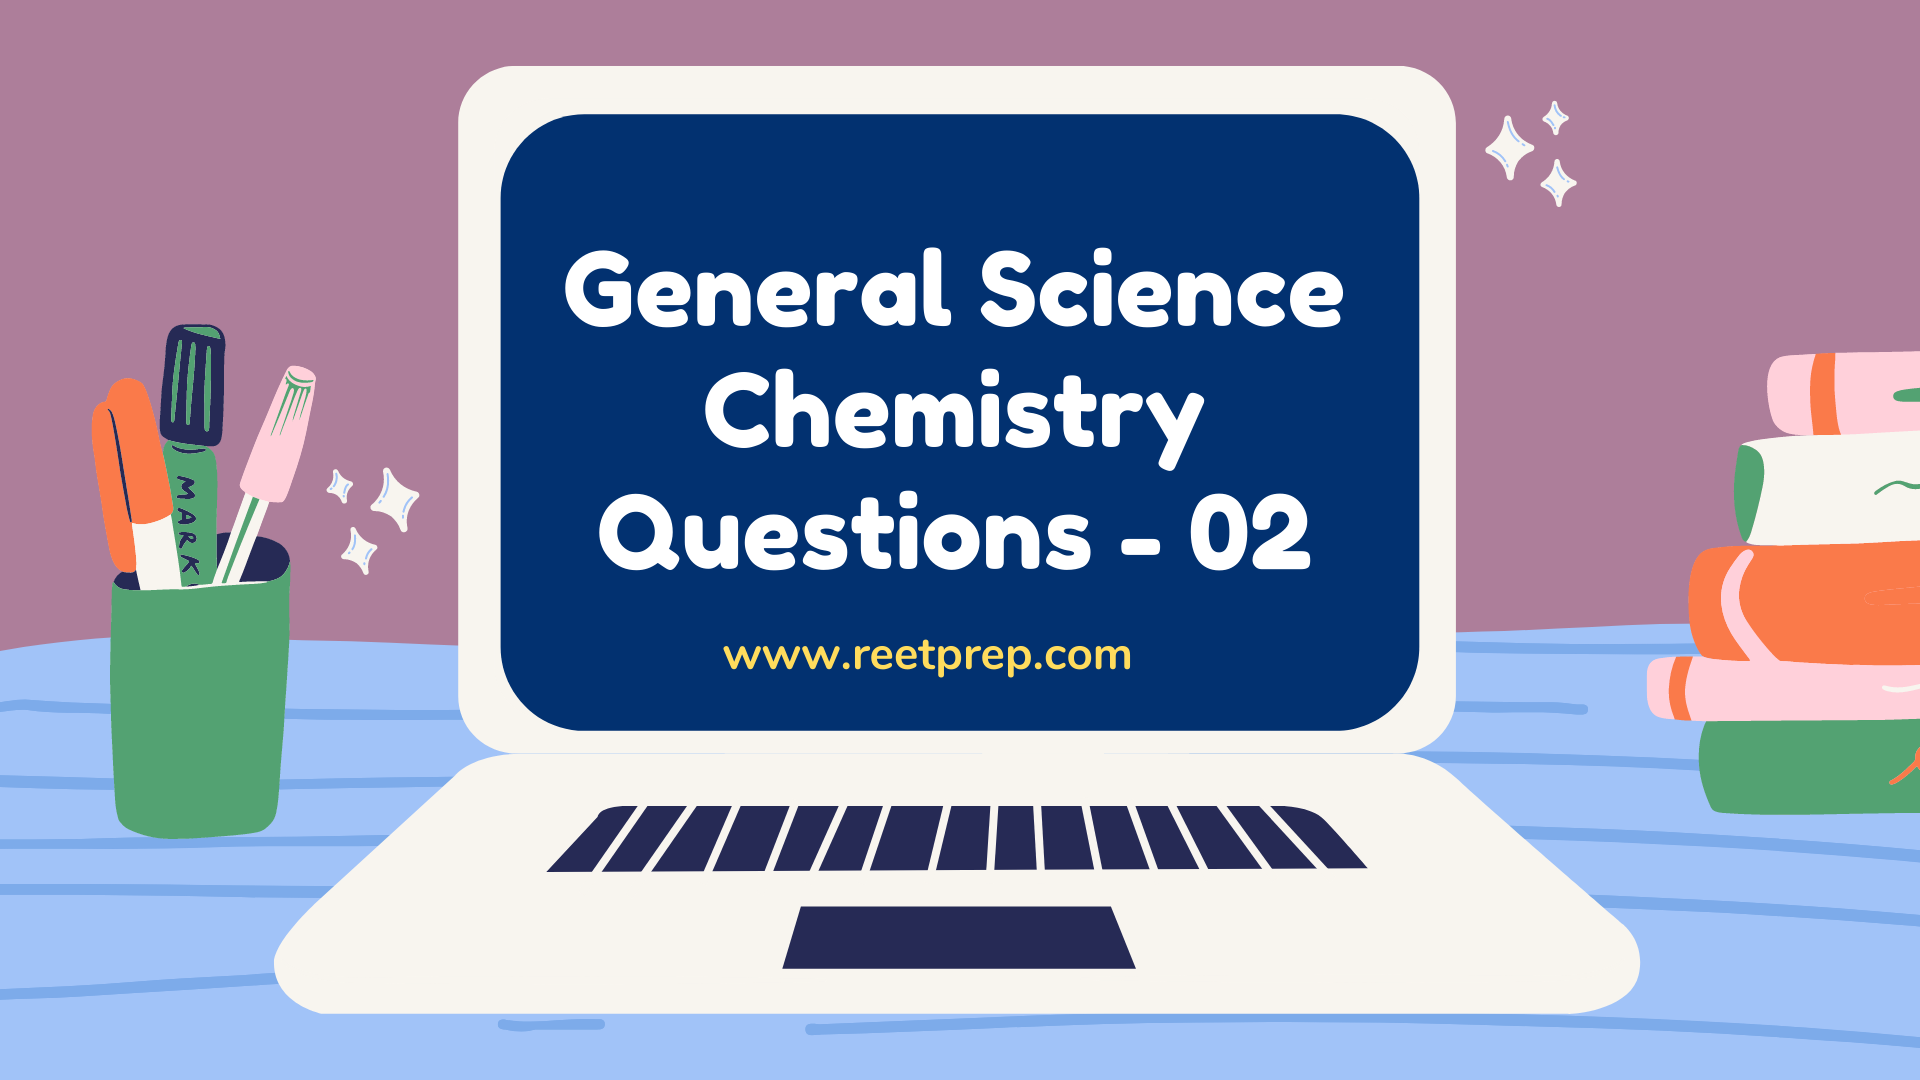 General Science Chemistry Questions - 02